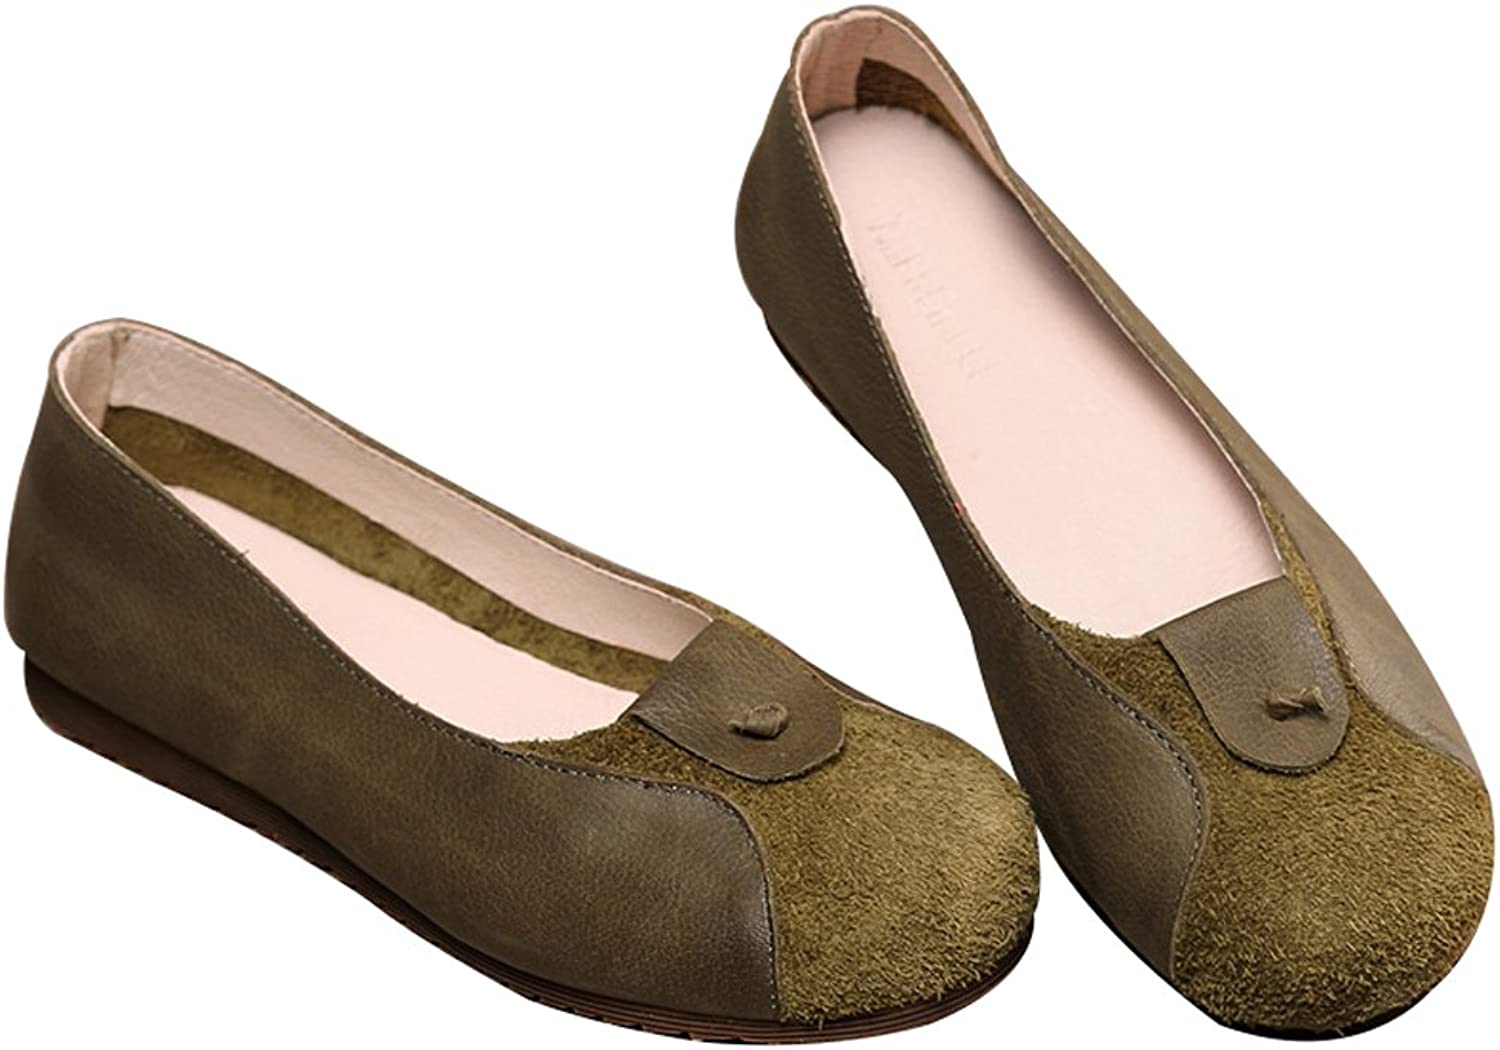 Zoulee Women's New Leather Handmade Flat shoes Bean shoes Ballet shoes